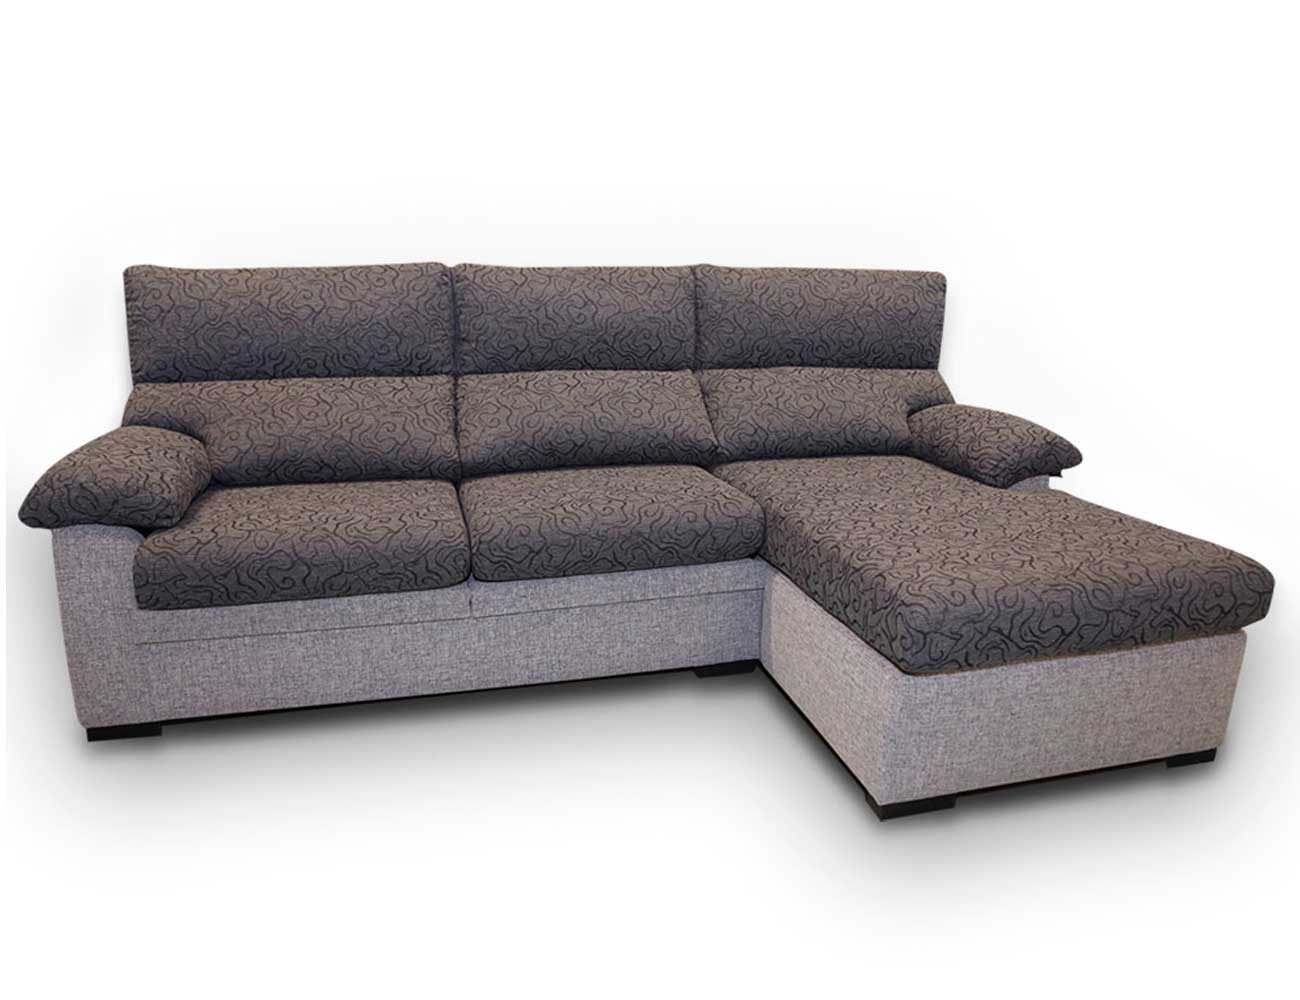 4900_sofa chaiselongue asientos extraibles gris marengo1